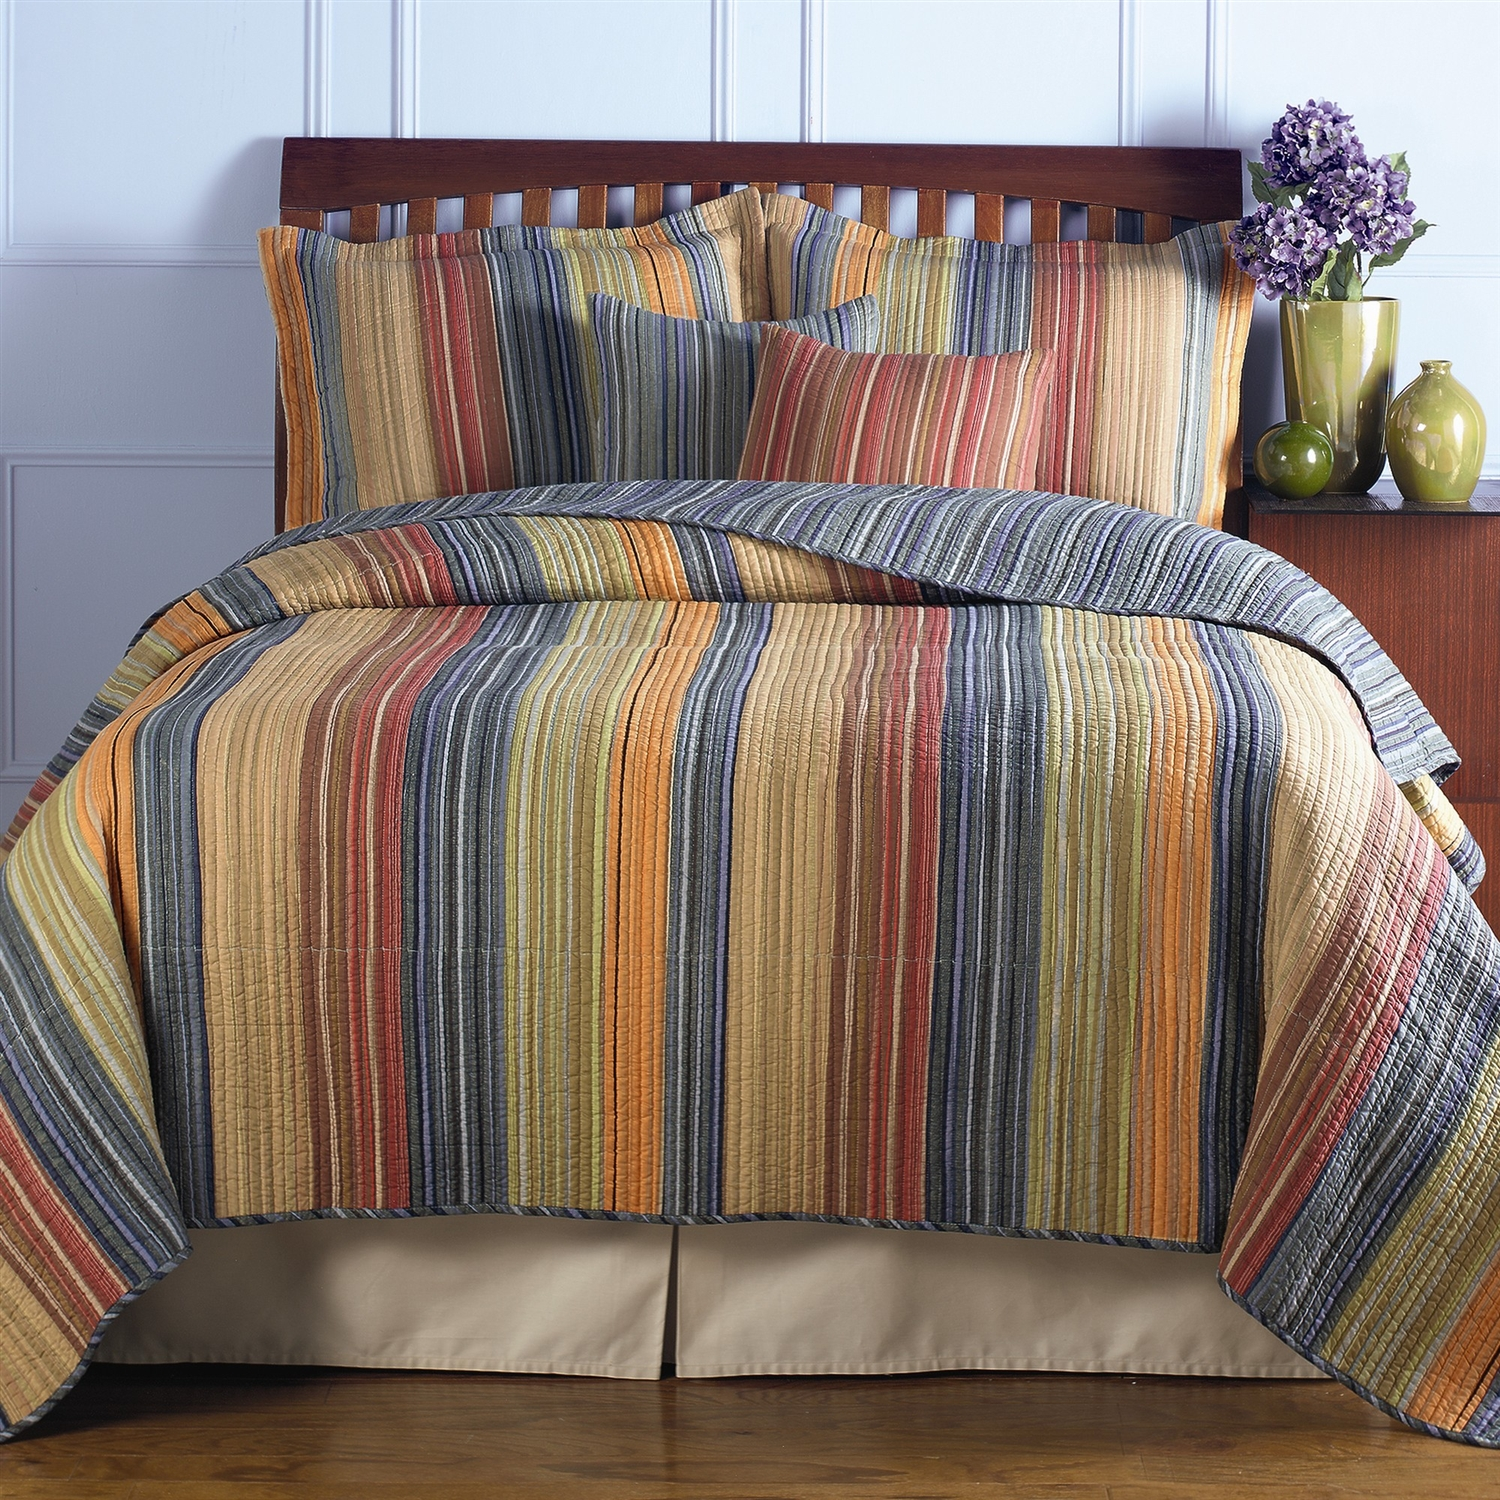 king size 100 cotton quilt set with brown orange red blue stripes - King Size Blanket